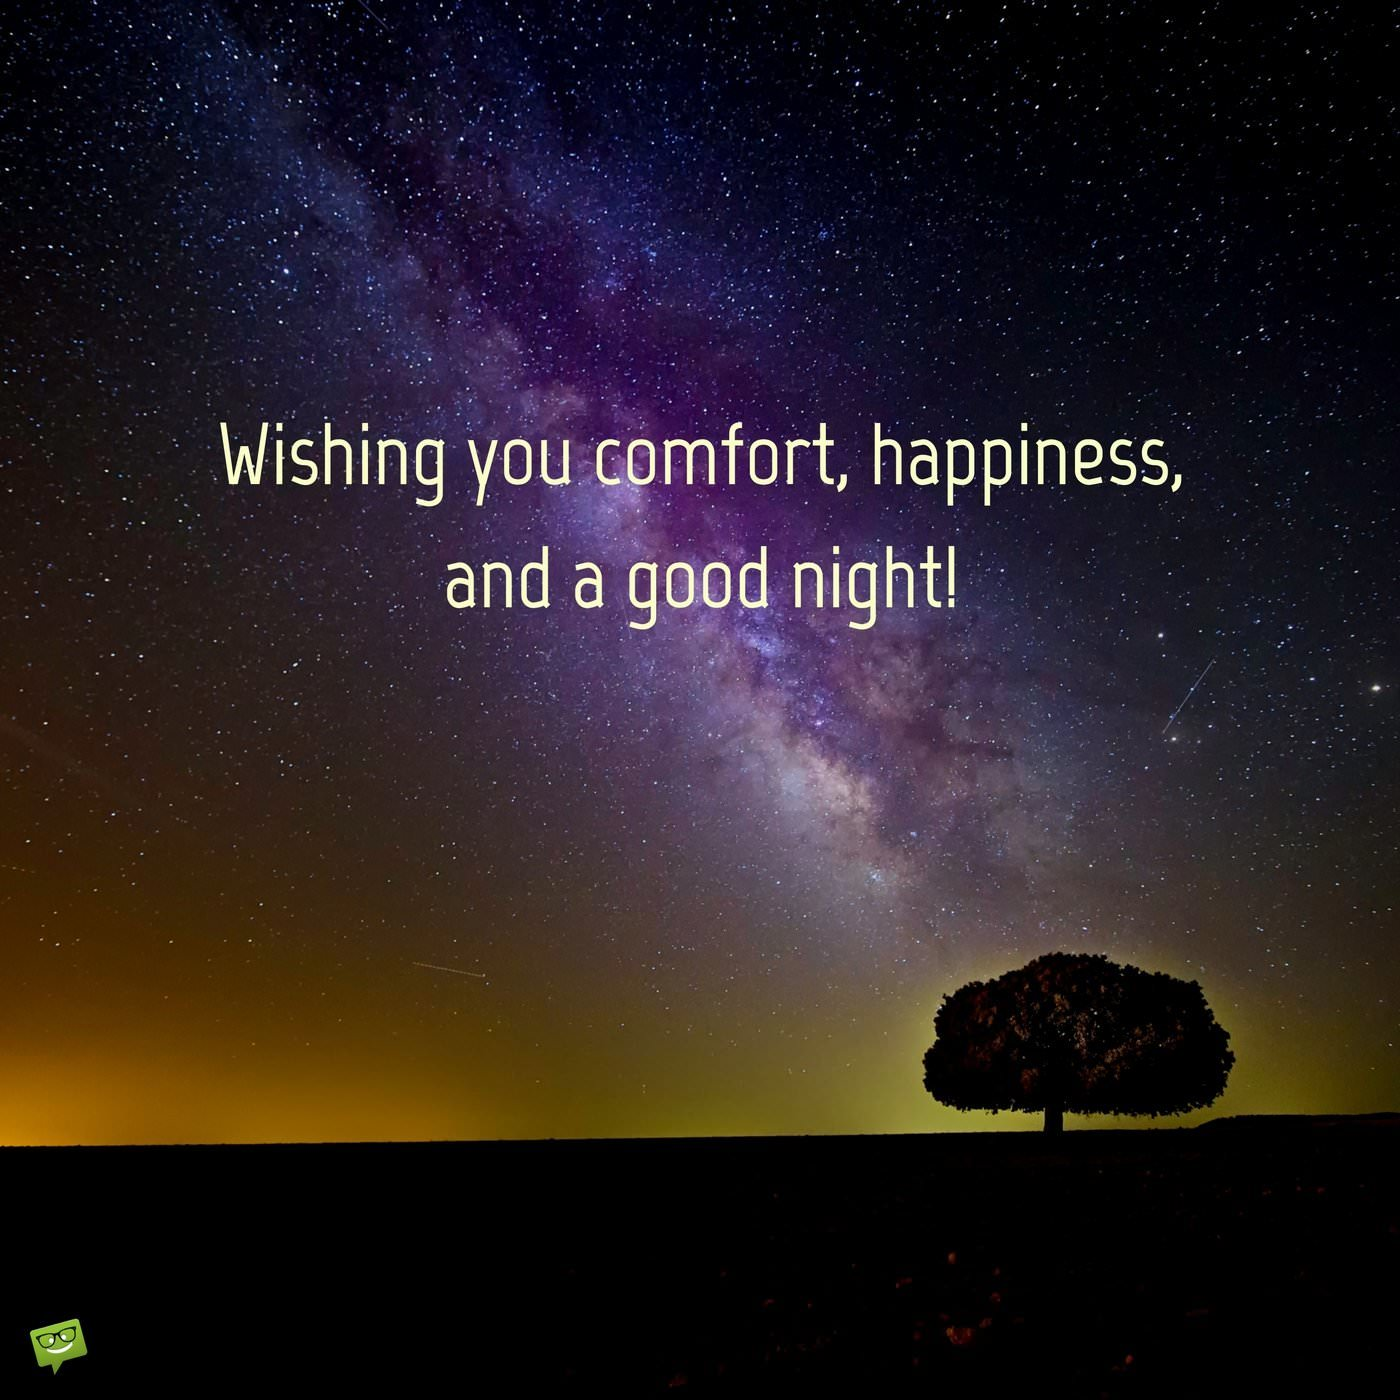 Attrayant Wishing You Comfort, Happiness And A Good Night!